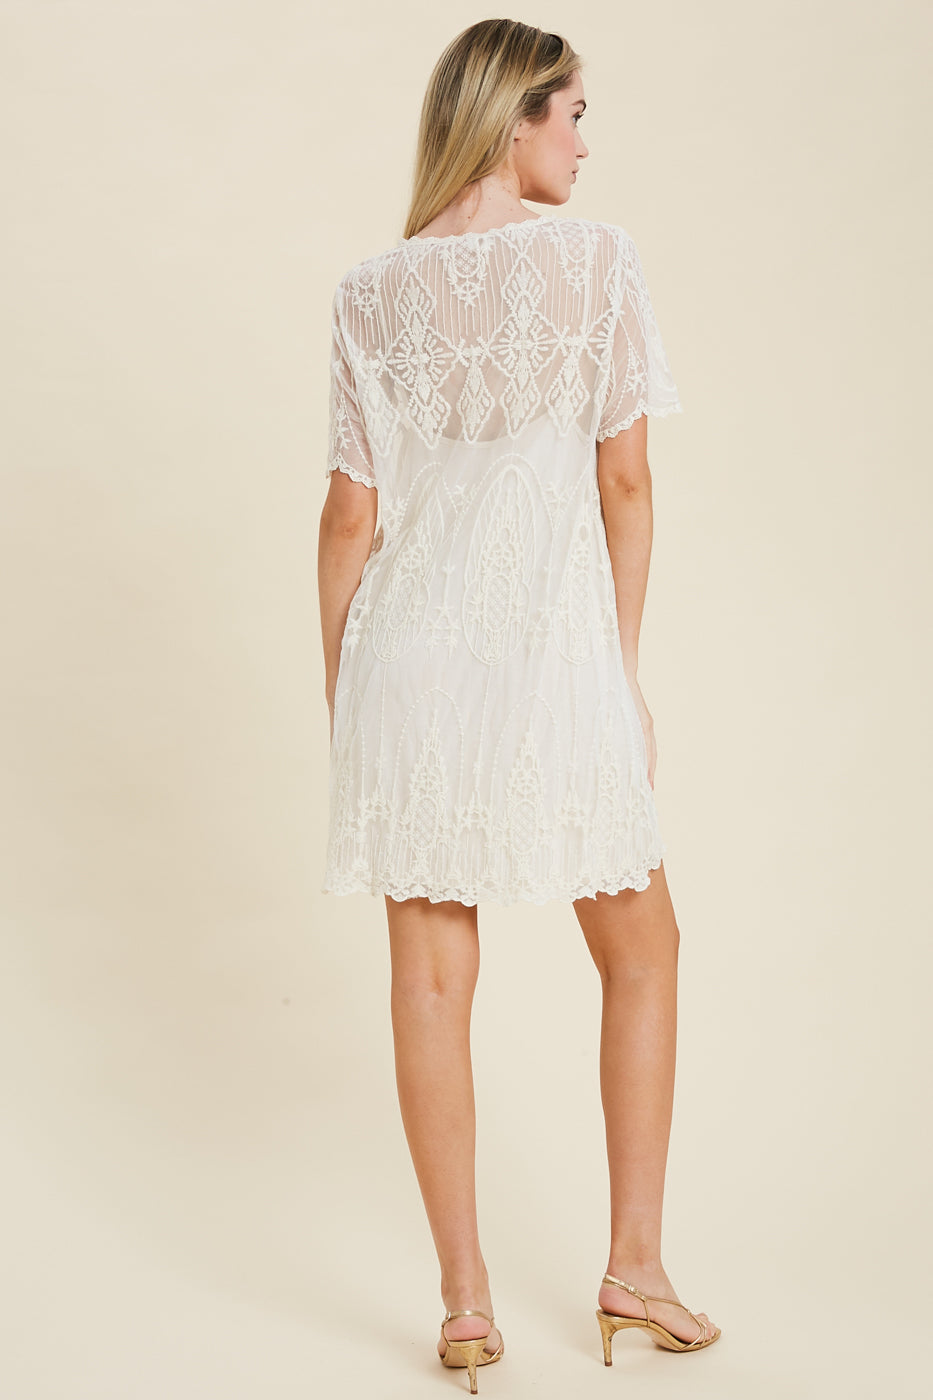 One Wish Embroidered Lace Dress